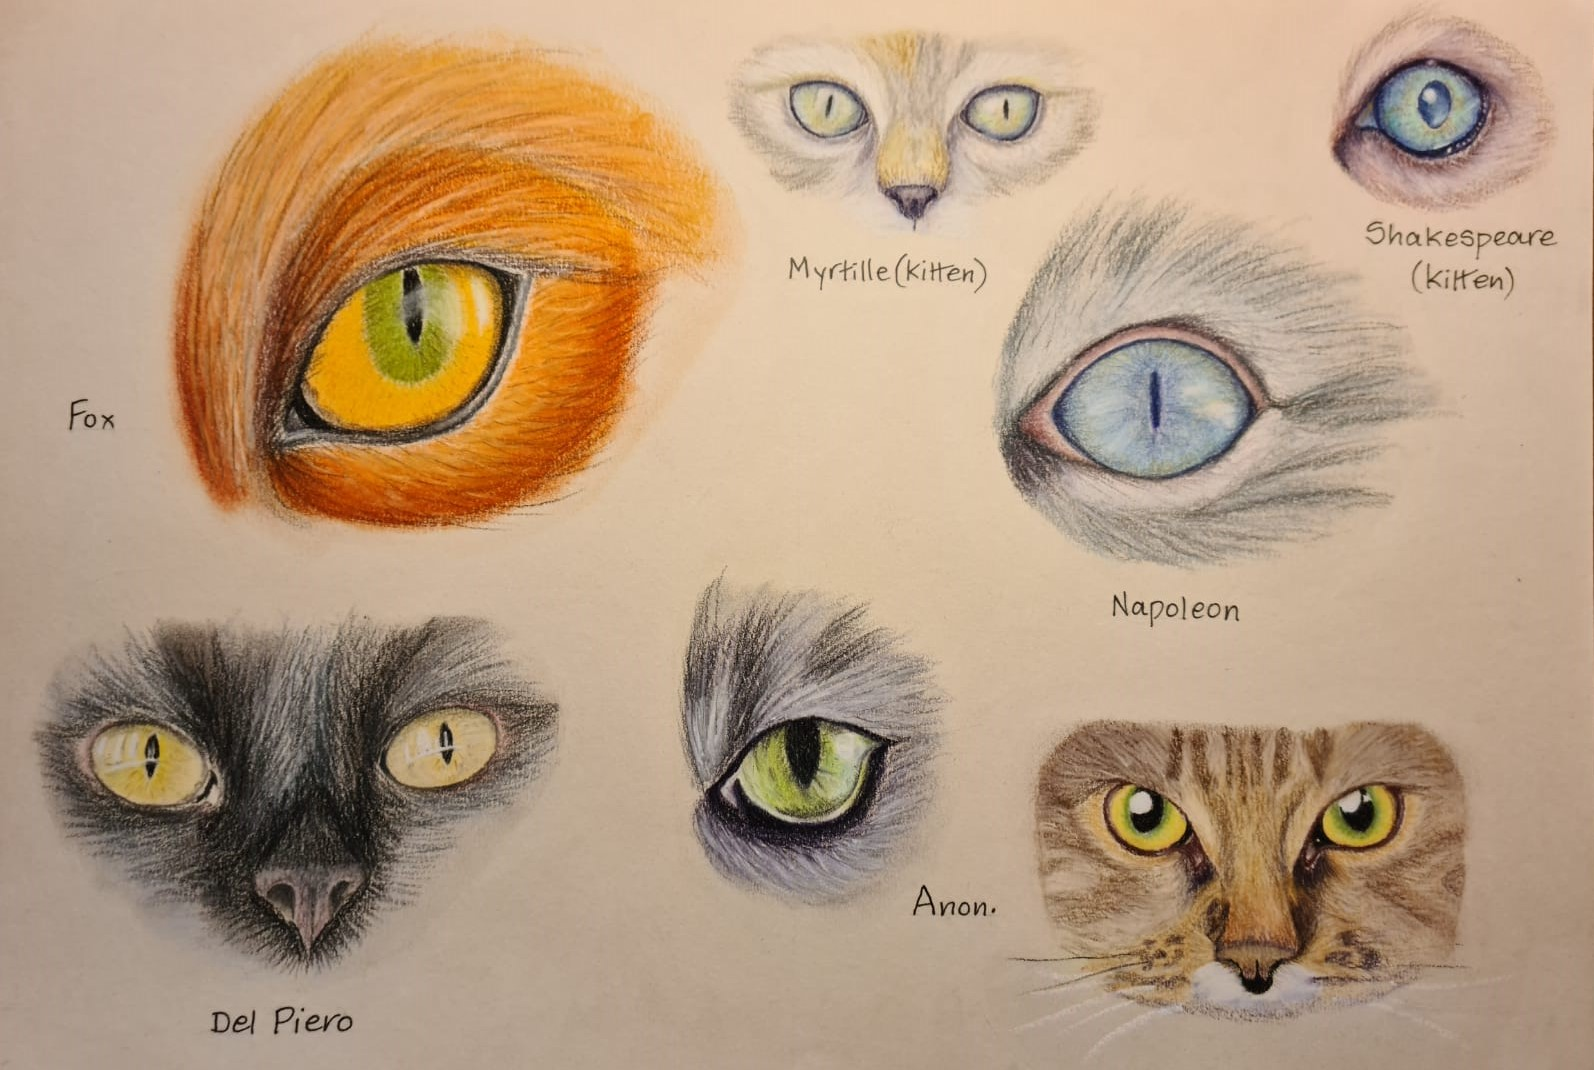 Learn how to draw animals at online art course via zoom with a professional art tutor and artist